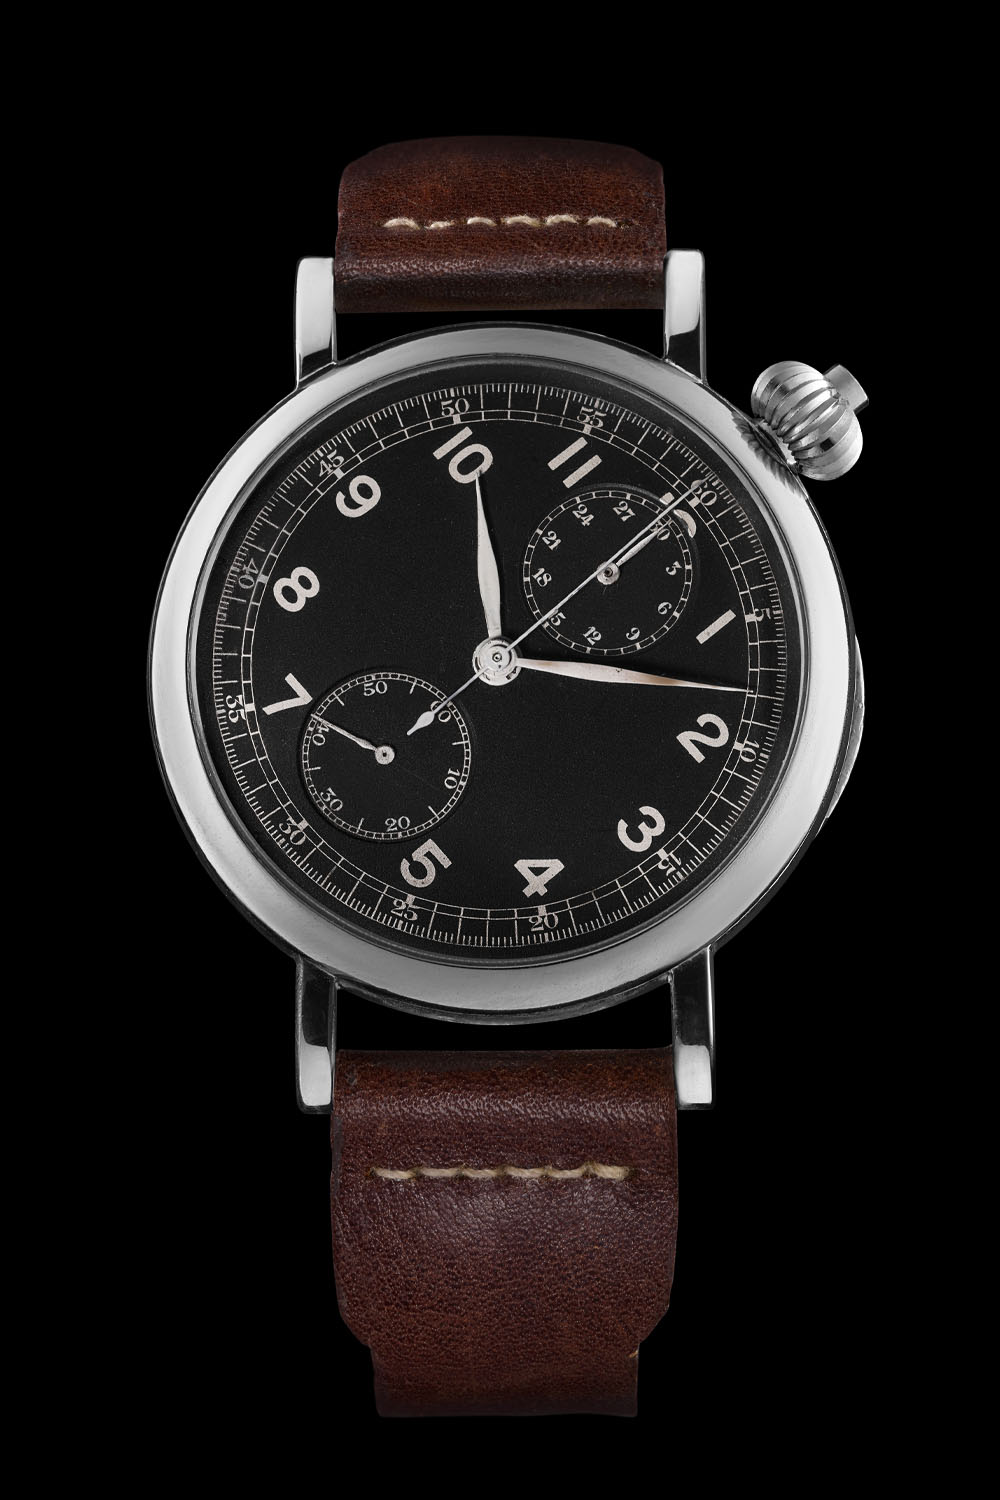 Historic 1935 Longines Type A-7 U.S. Army